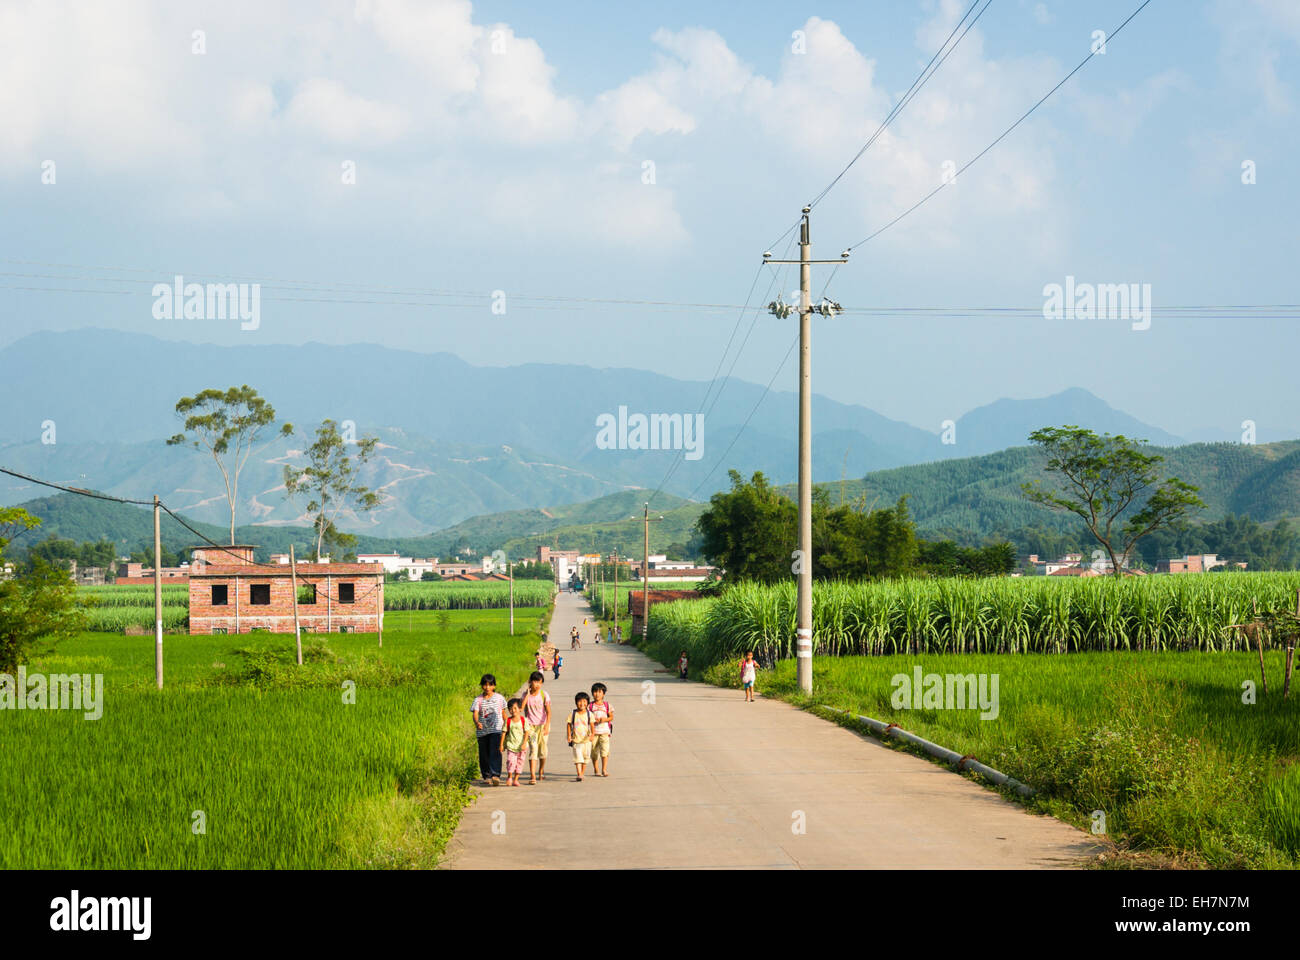 Children returning home from school along road in rural Guangdong, China - Stock Image